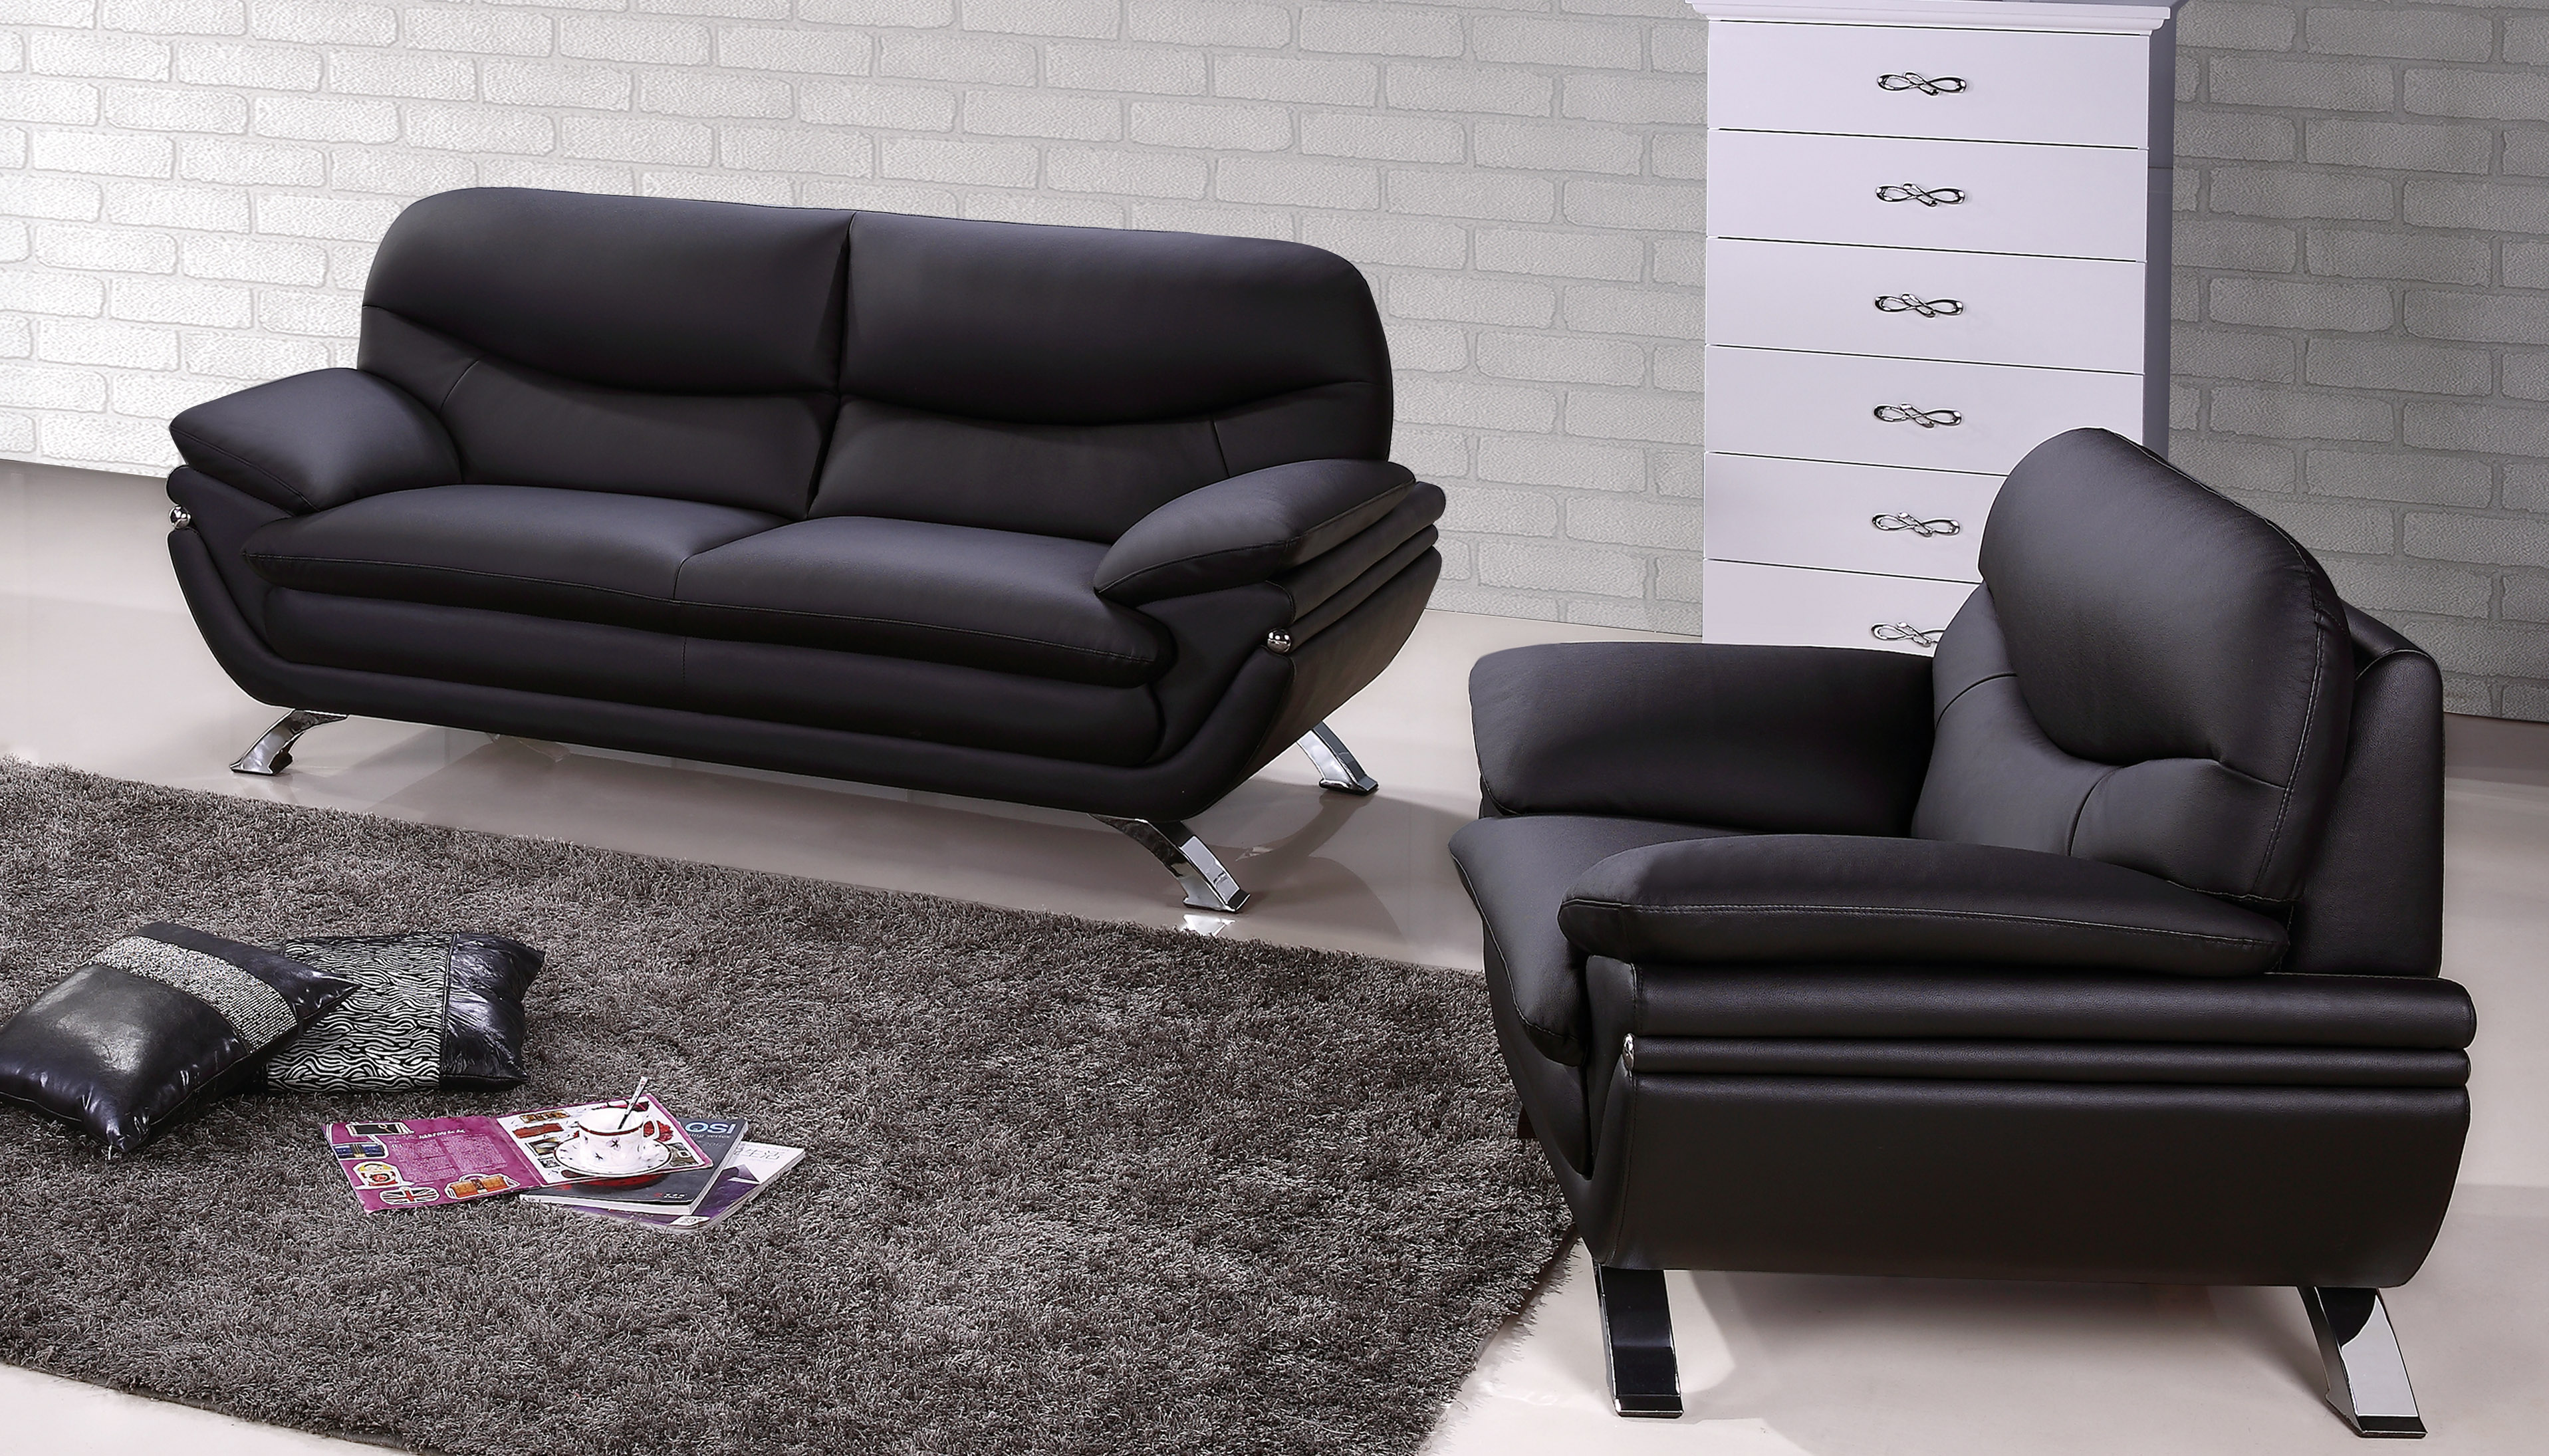 Miraculous Harmony Ying Yang Contemporary Leather Living Room Sofa Set Ncnpc Chair Design For Home Ncnpcorg